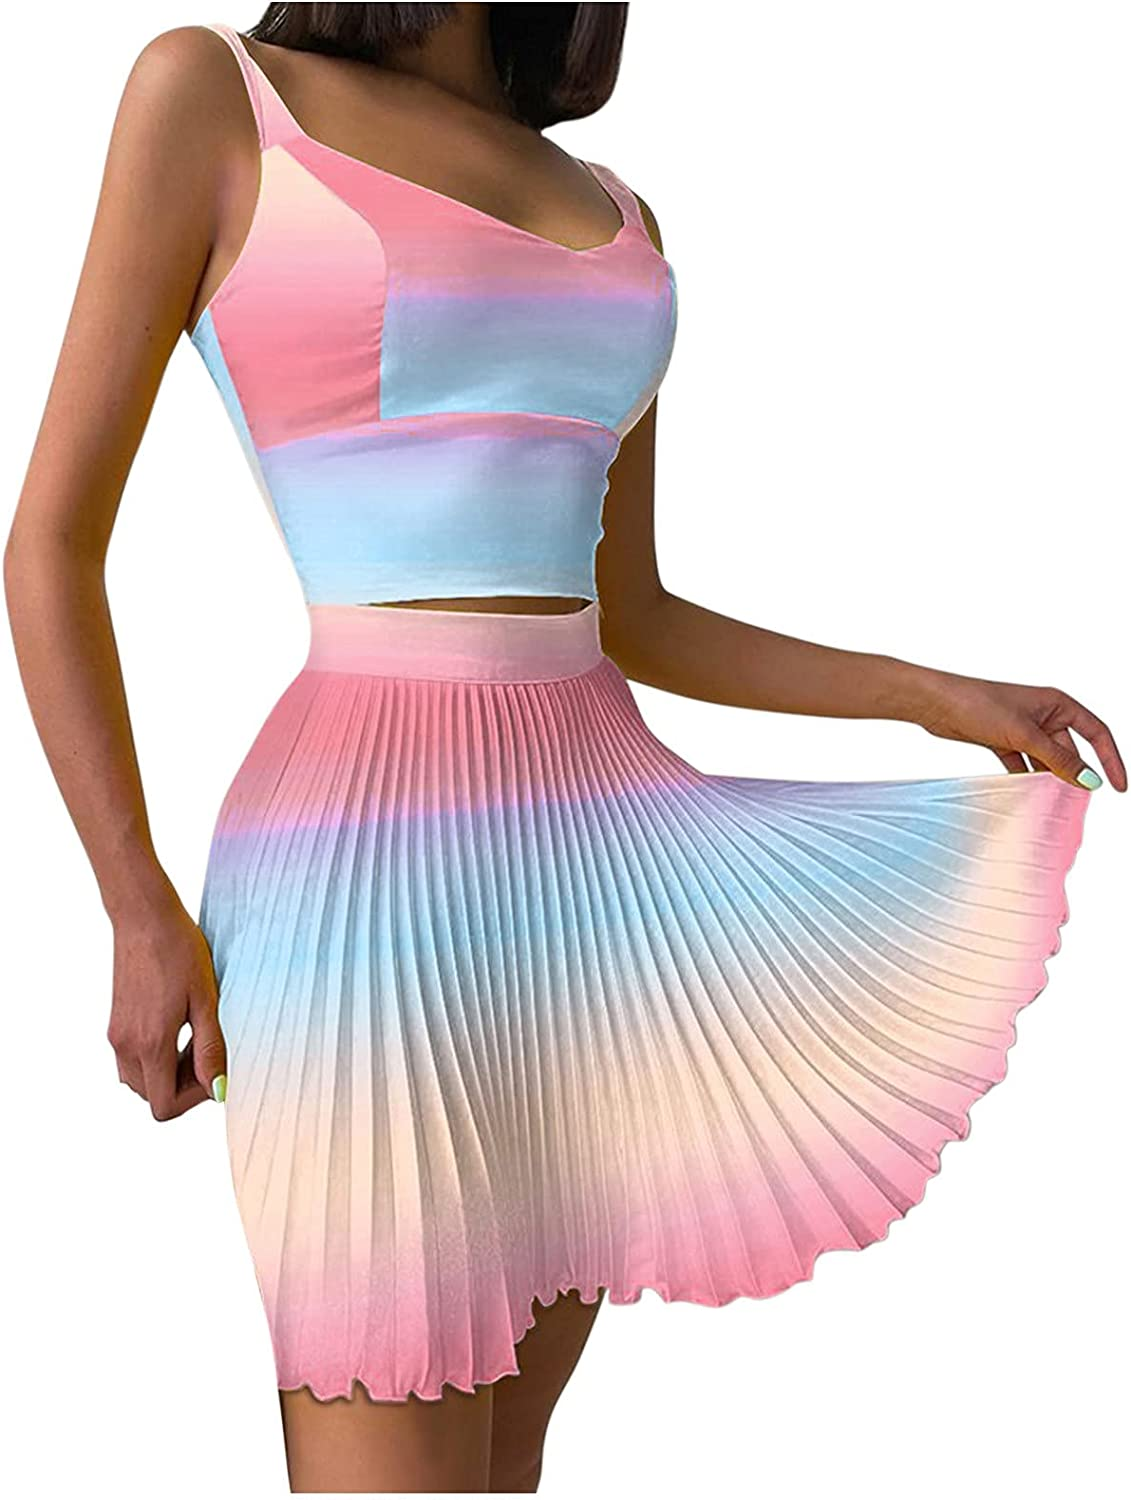 Women Two Piece Skirt and Top Set Print Sleeveless Casual Sexy Cami and Pleated Skirts Matching 2 Piece Outfits Track Suit